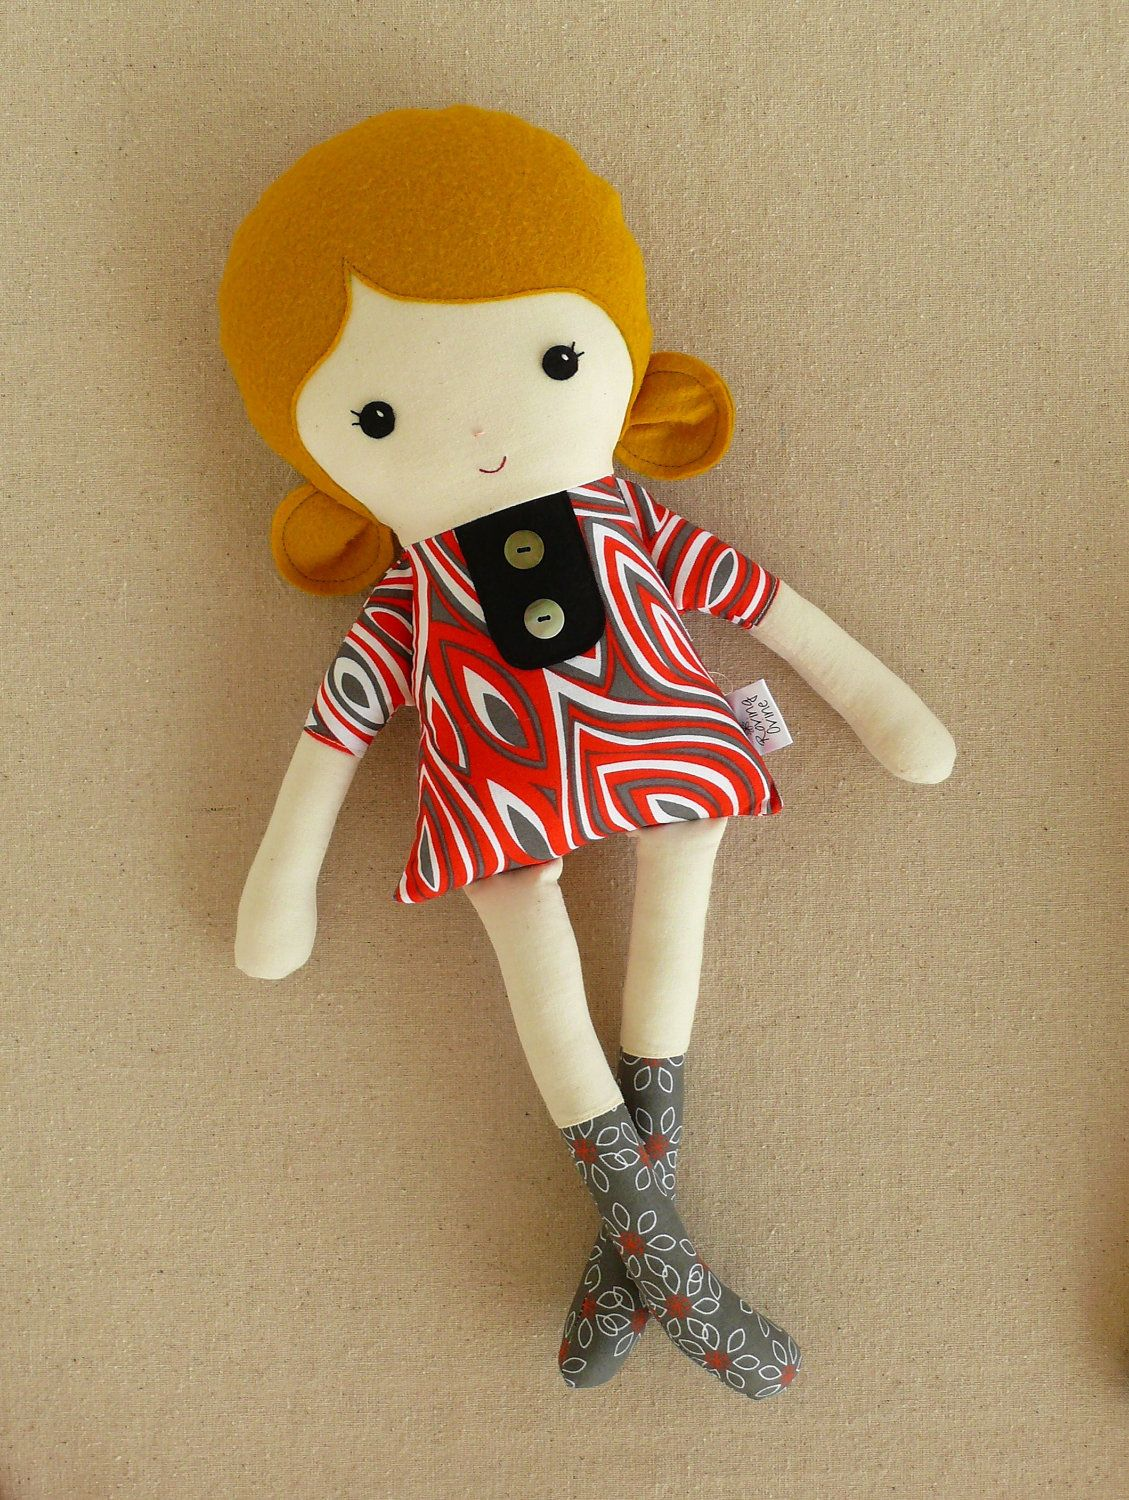 new doll for baby girl by Roving Ovine